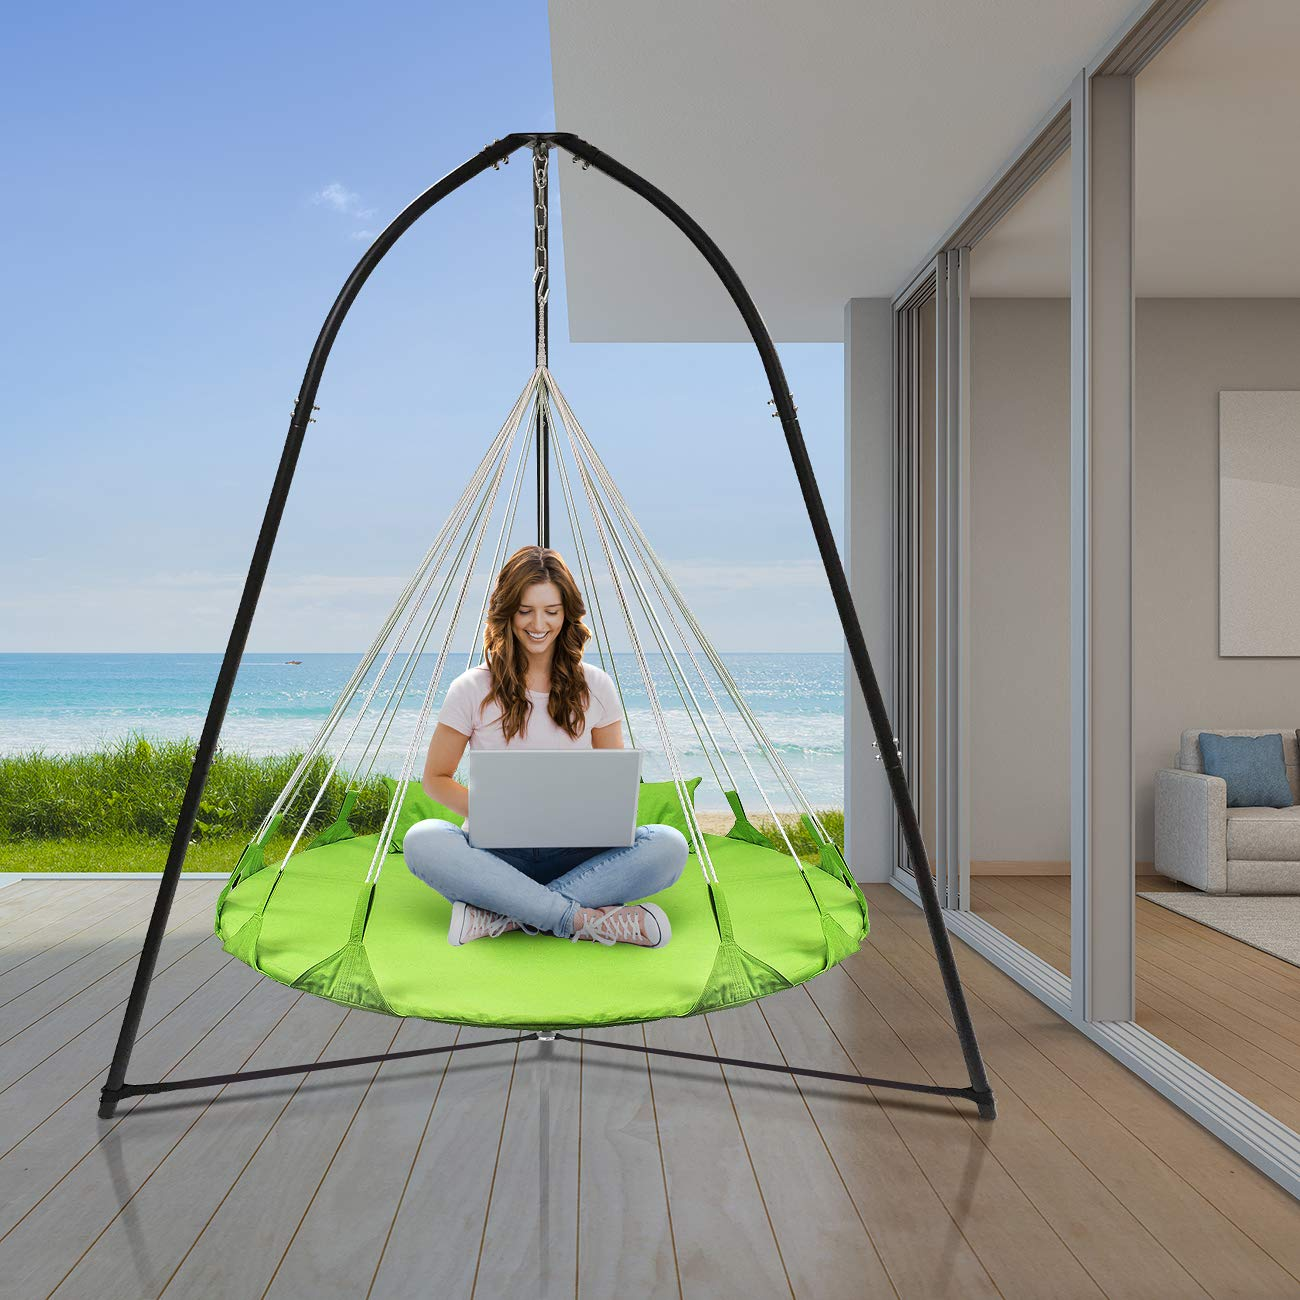 Sorbus Tripod Hanging Chair Stand Frame for Hanging Chairs, Swings, Saucers, Loungers, Cocoon Chairs, Great for Indoor Outdoor Use, Patio, Lawn, Deck, Yard, Garden